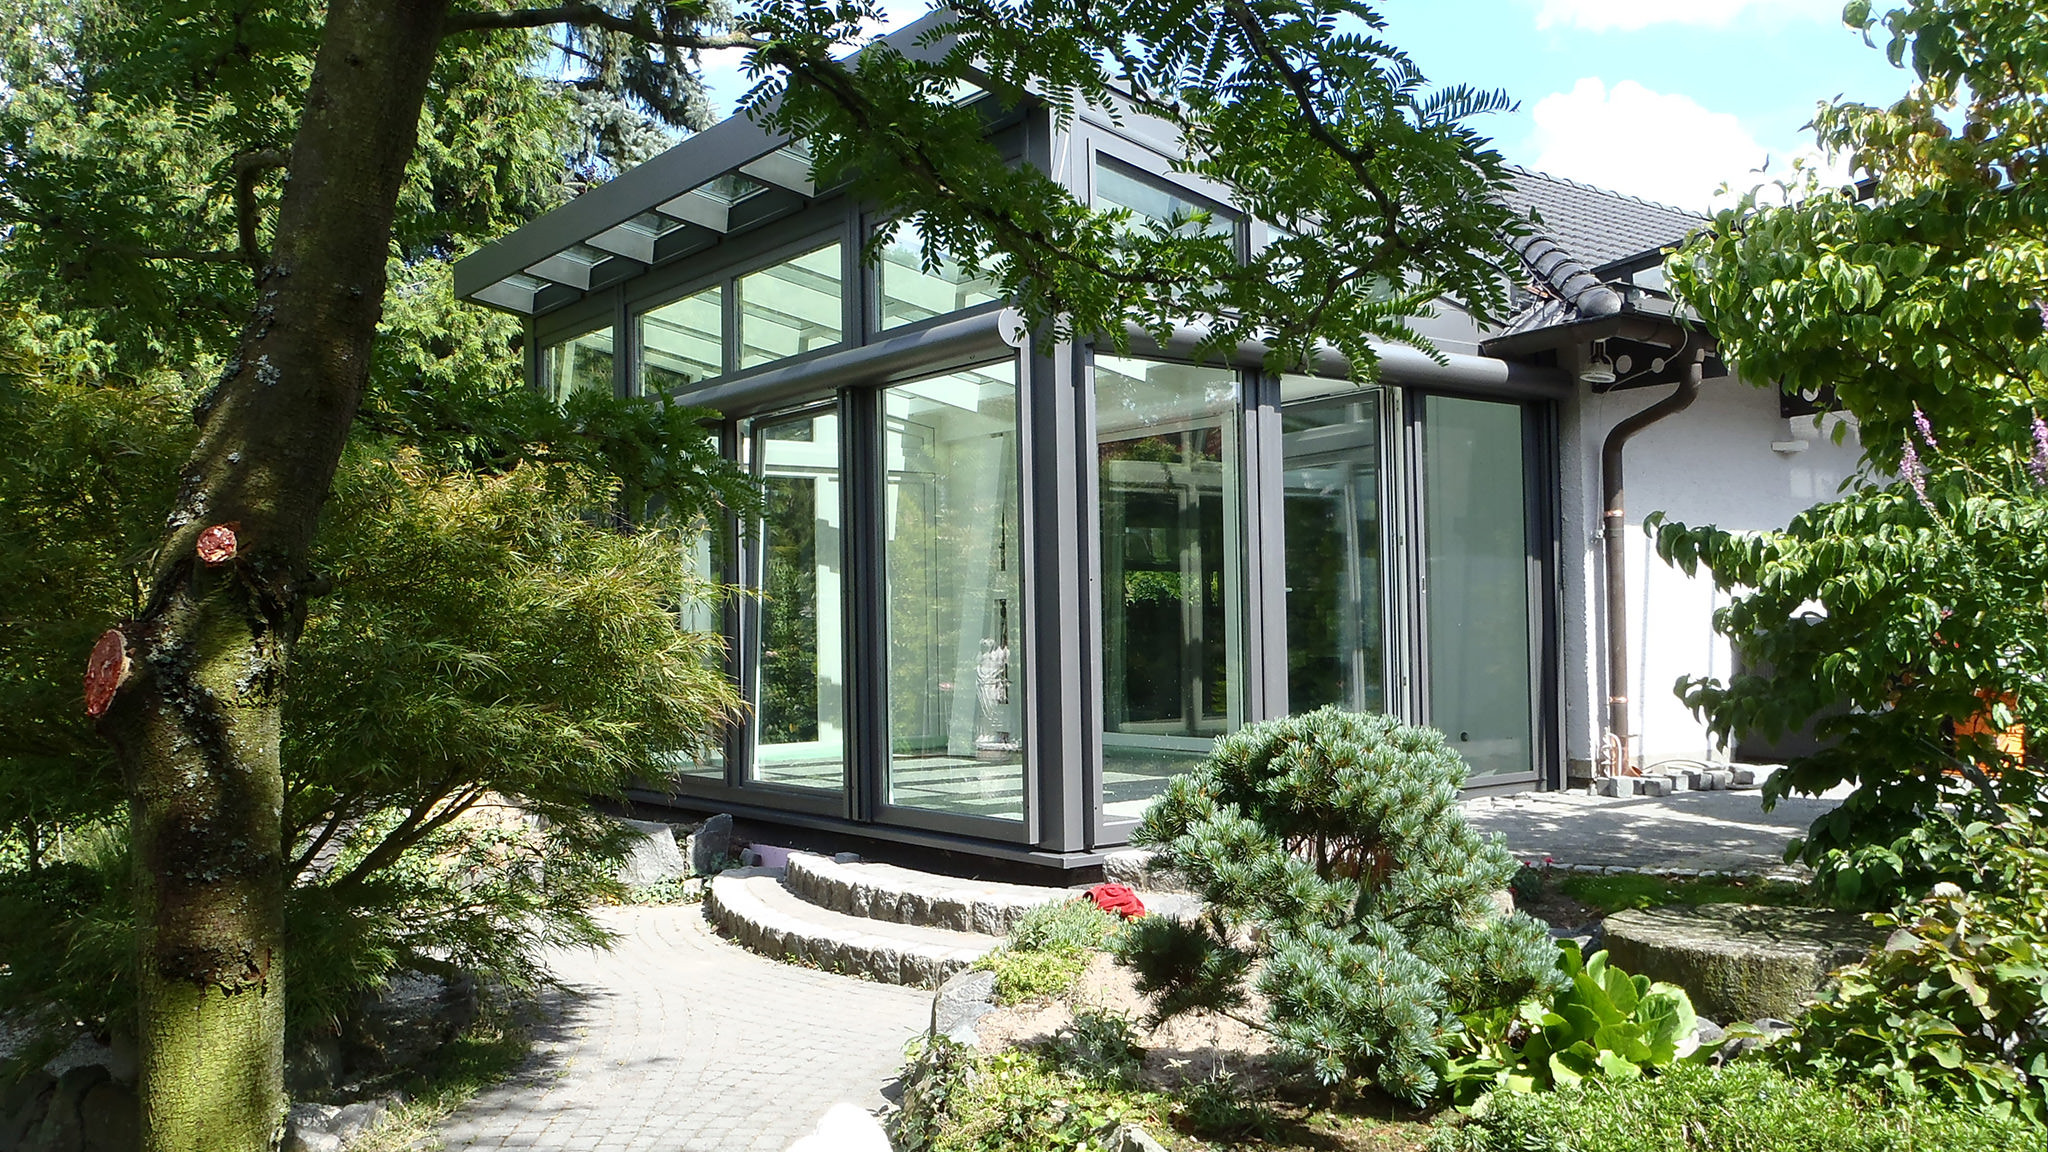 Wintergarten-Architektur: Traditionell